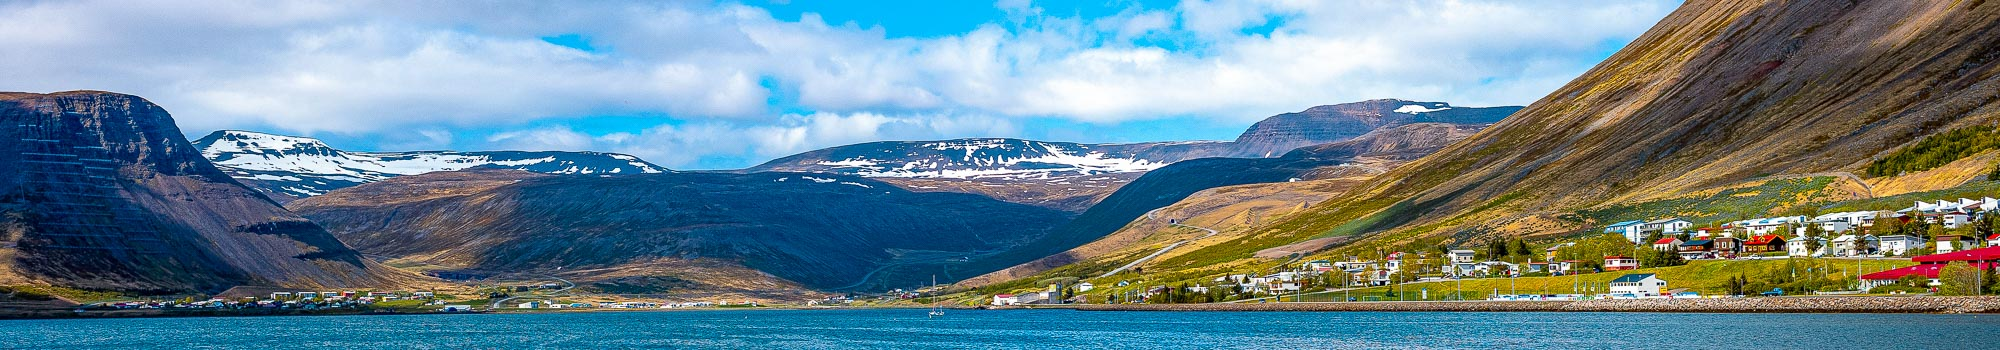 Isafjordur town surrounded by mountains in Iceland